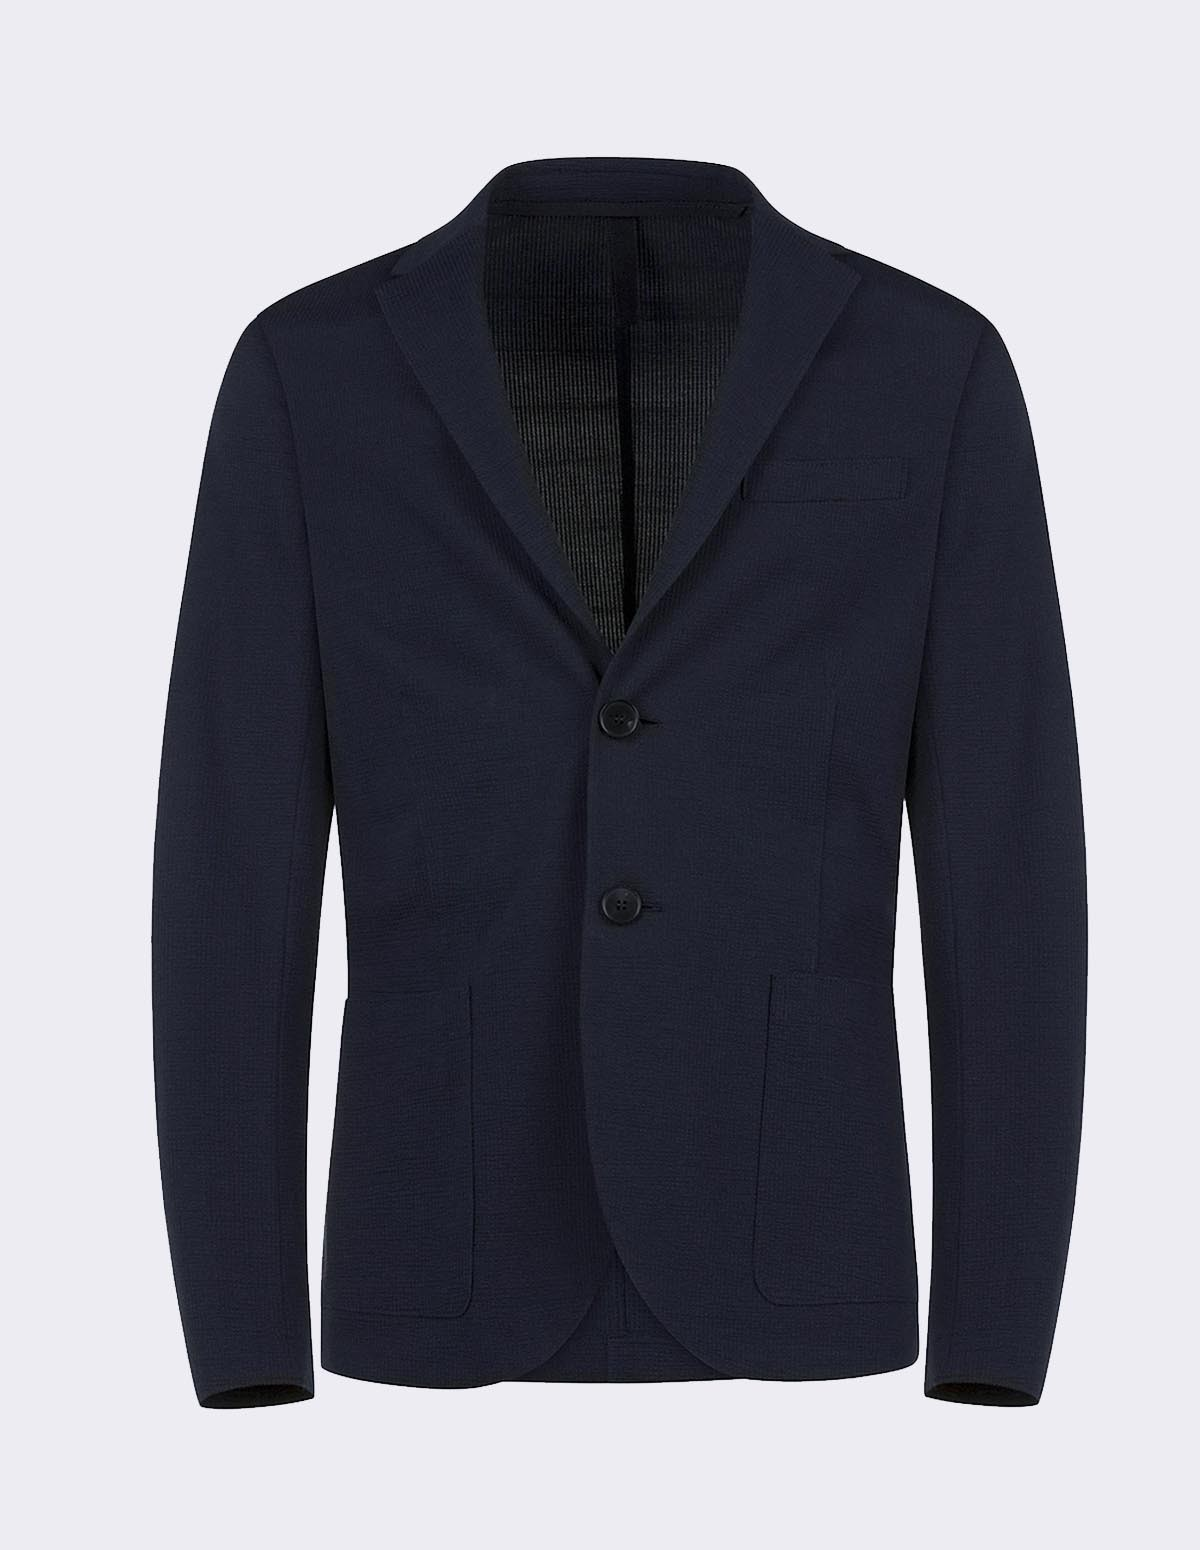 Hwl Men 2b Sartorial - NAVY BLUE